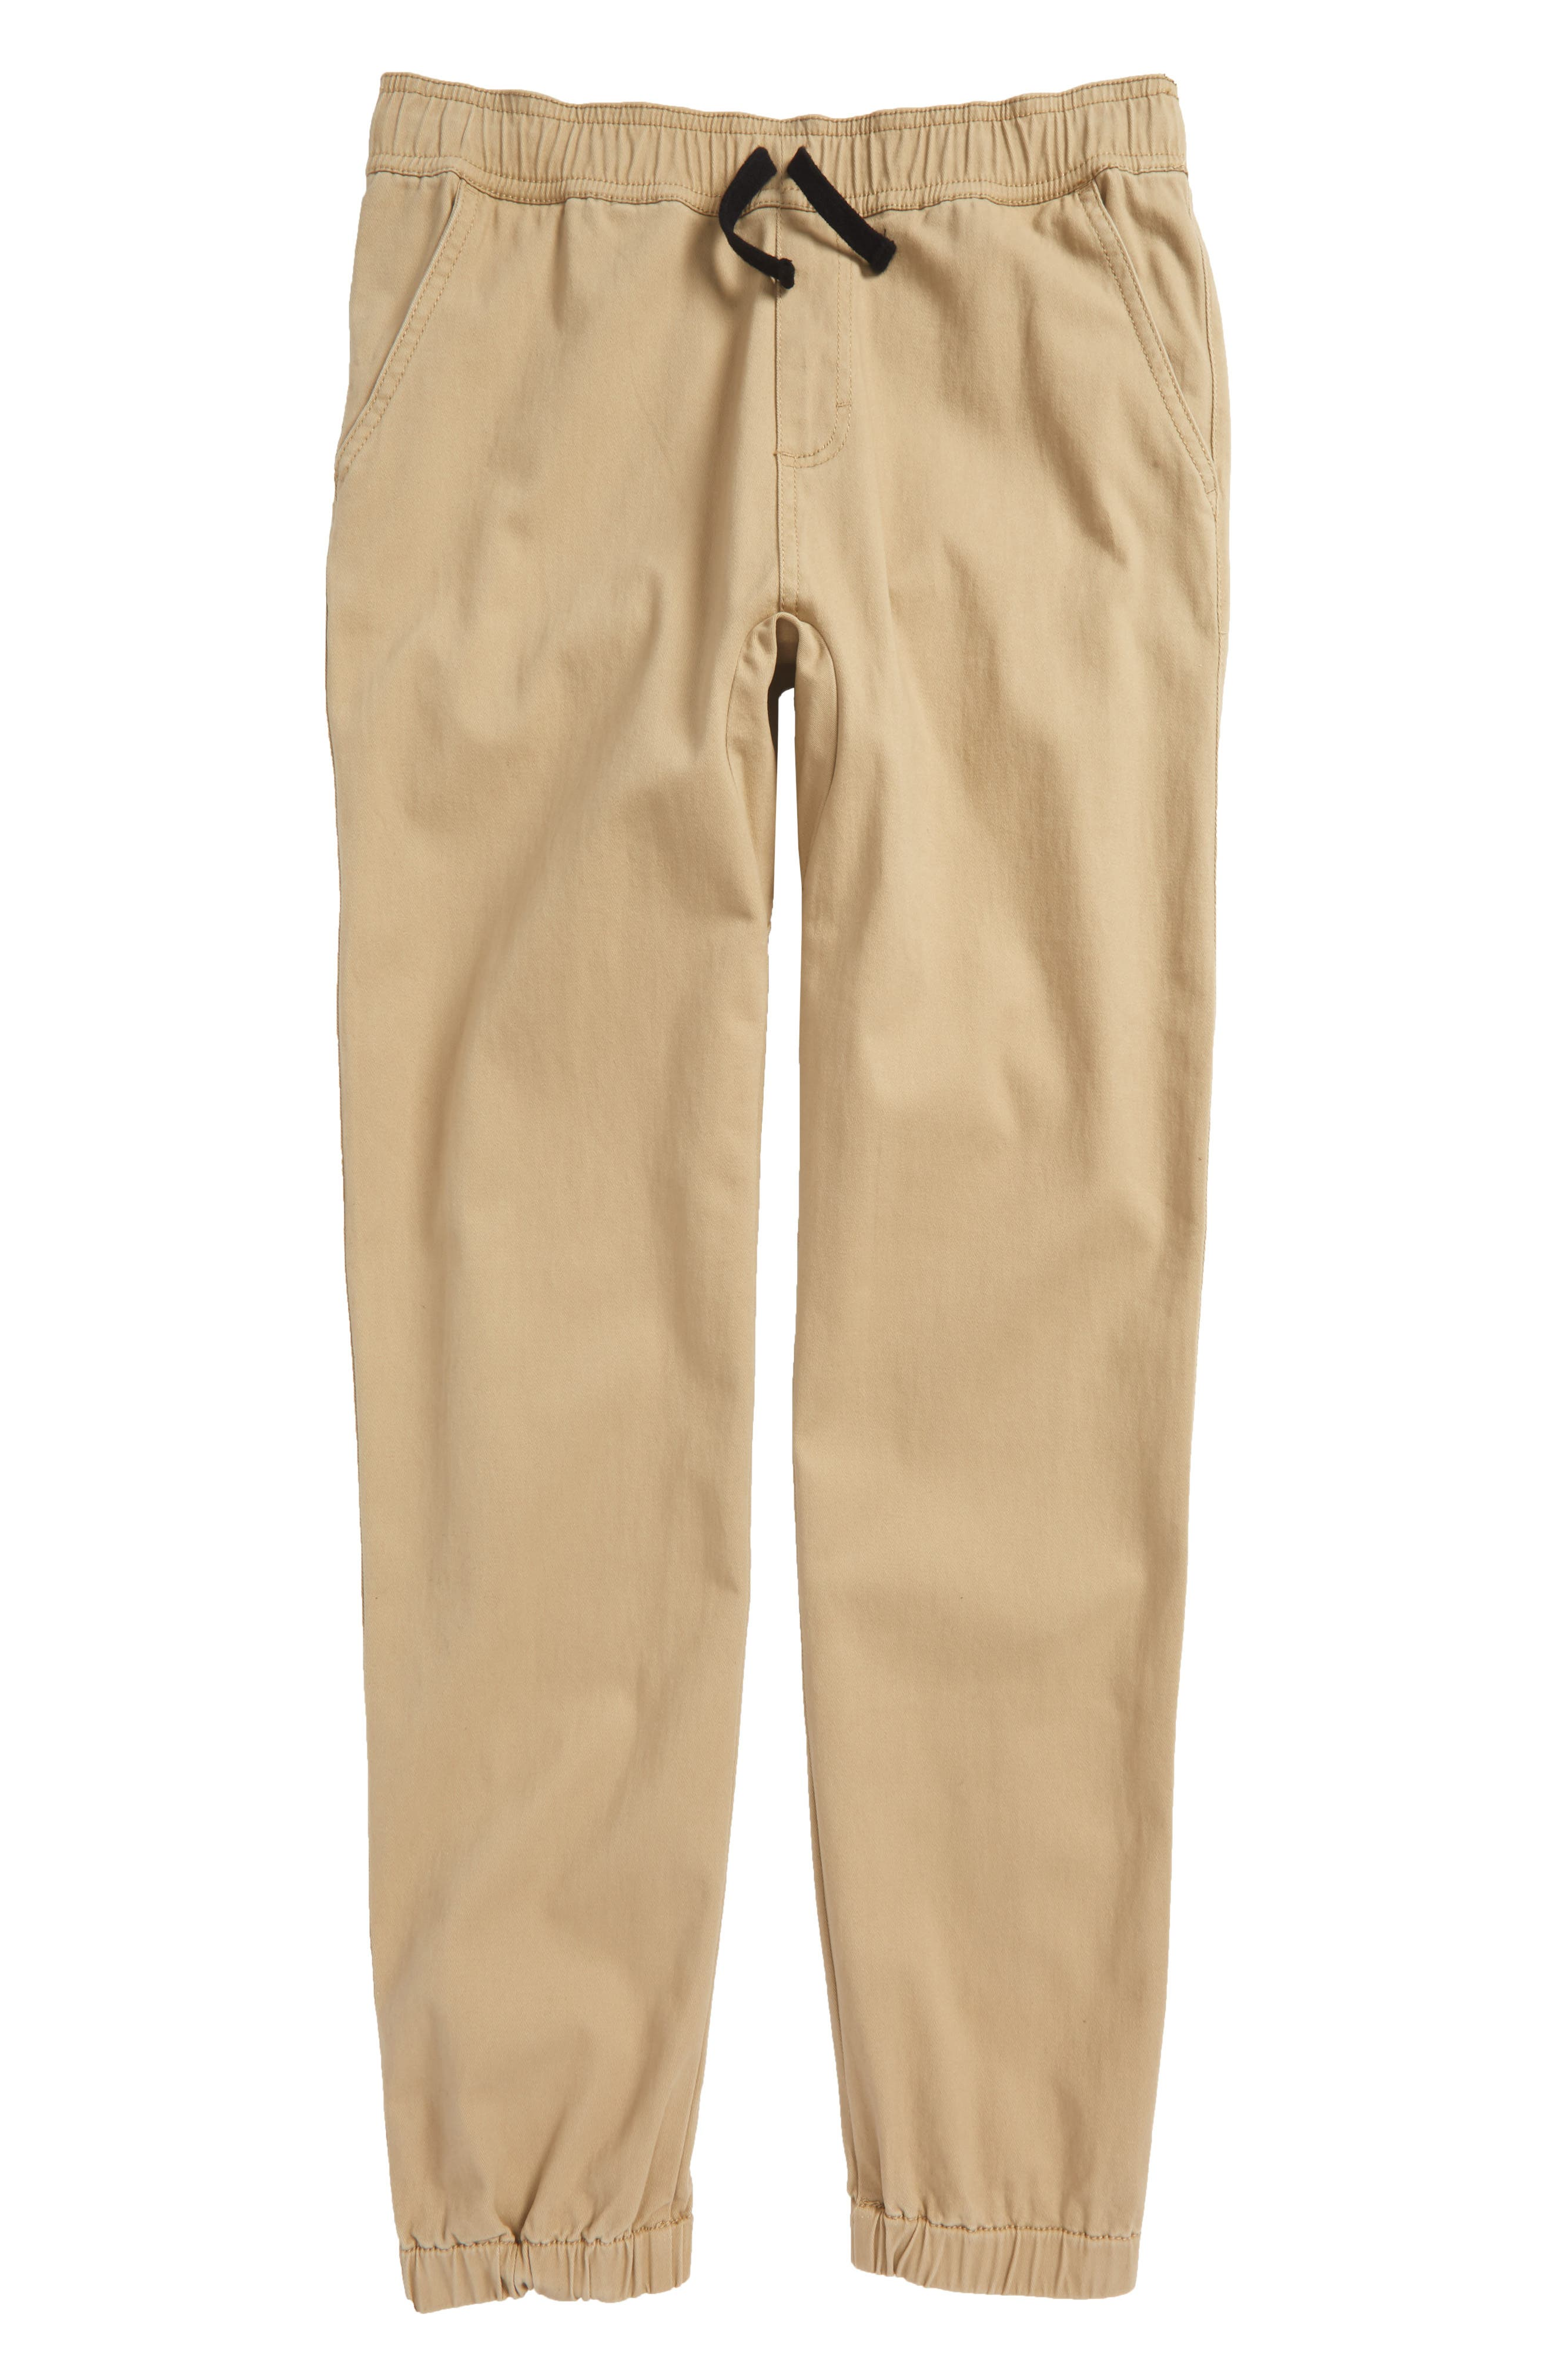 Woven Jogger Pants,                             Main thumbnail 1, color,                             Tan Stock